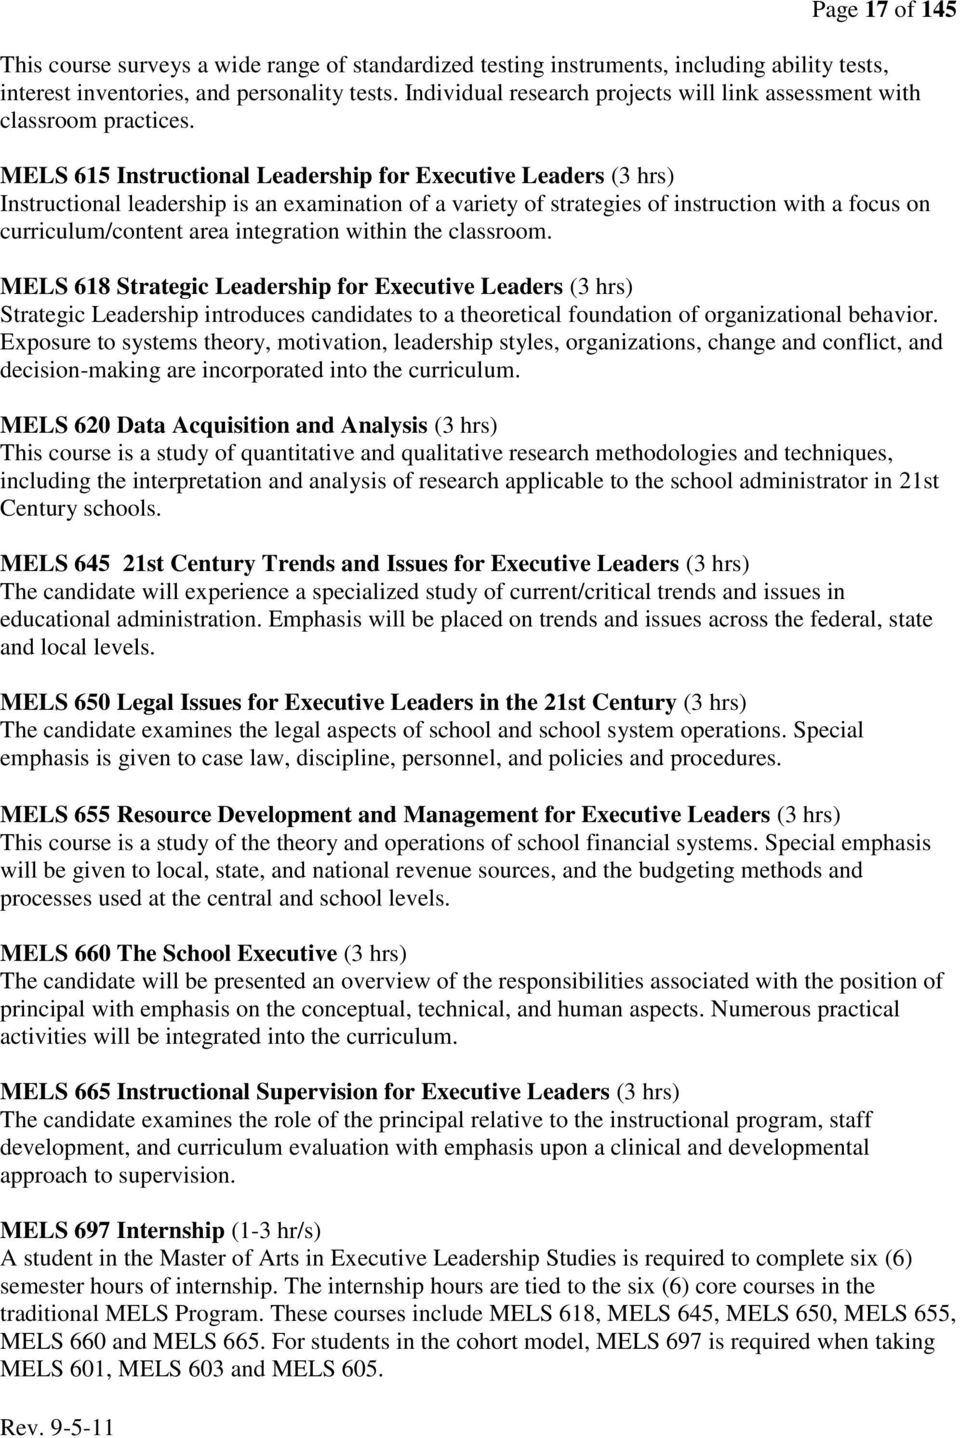 MELS 615 Instructional Leadership for Executive Leaders (3 hrs) Instructional leadership is an examination of a variety of strategies of instruction with a focus on curriculum/content area